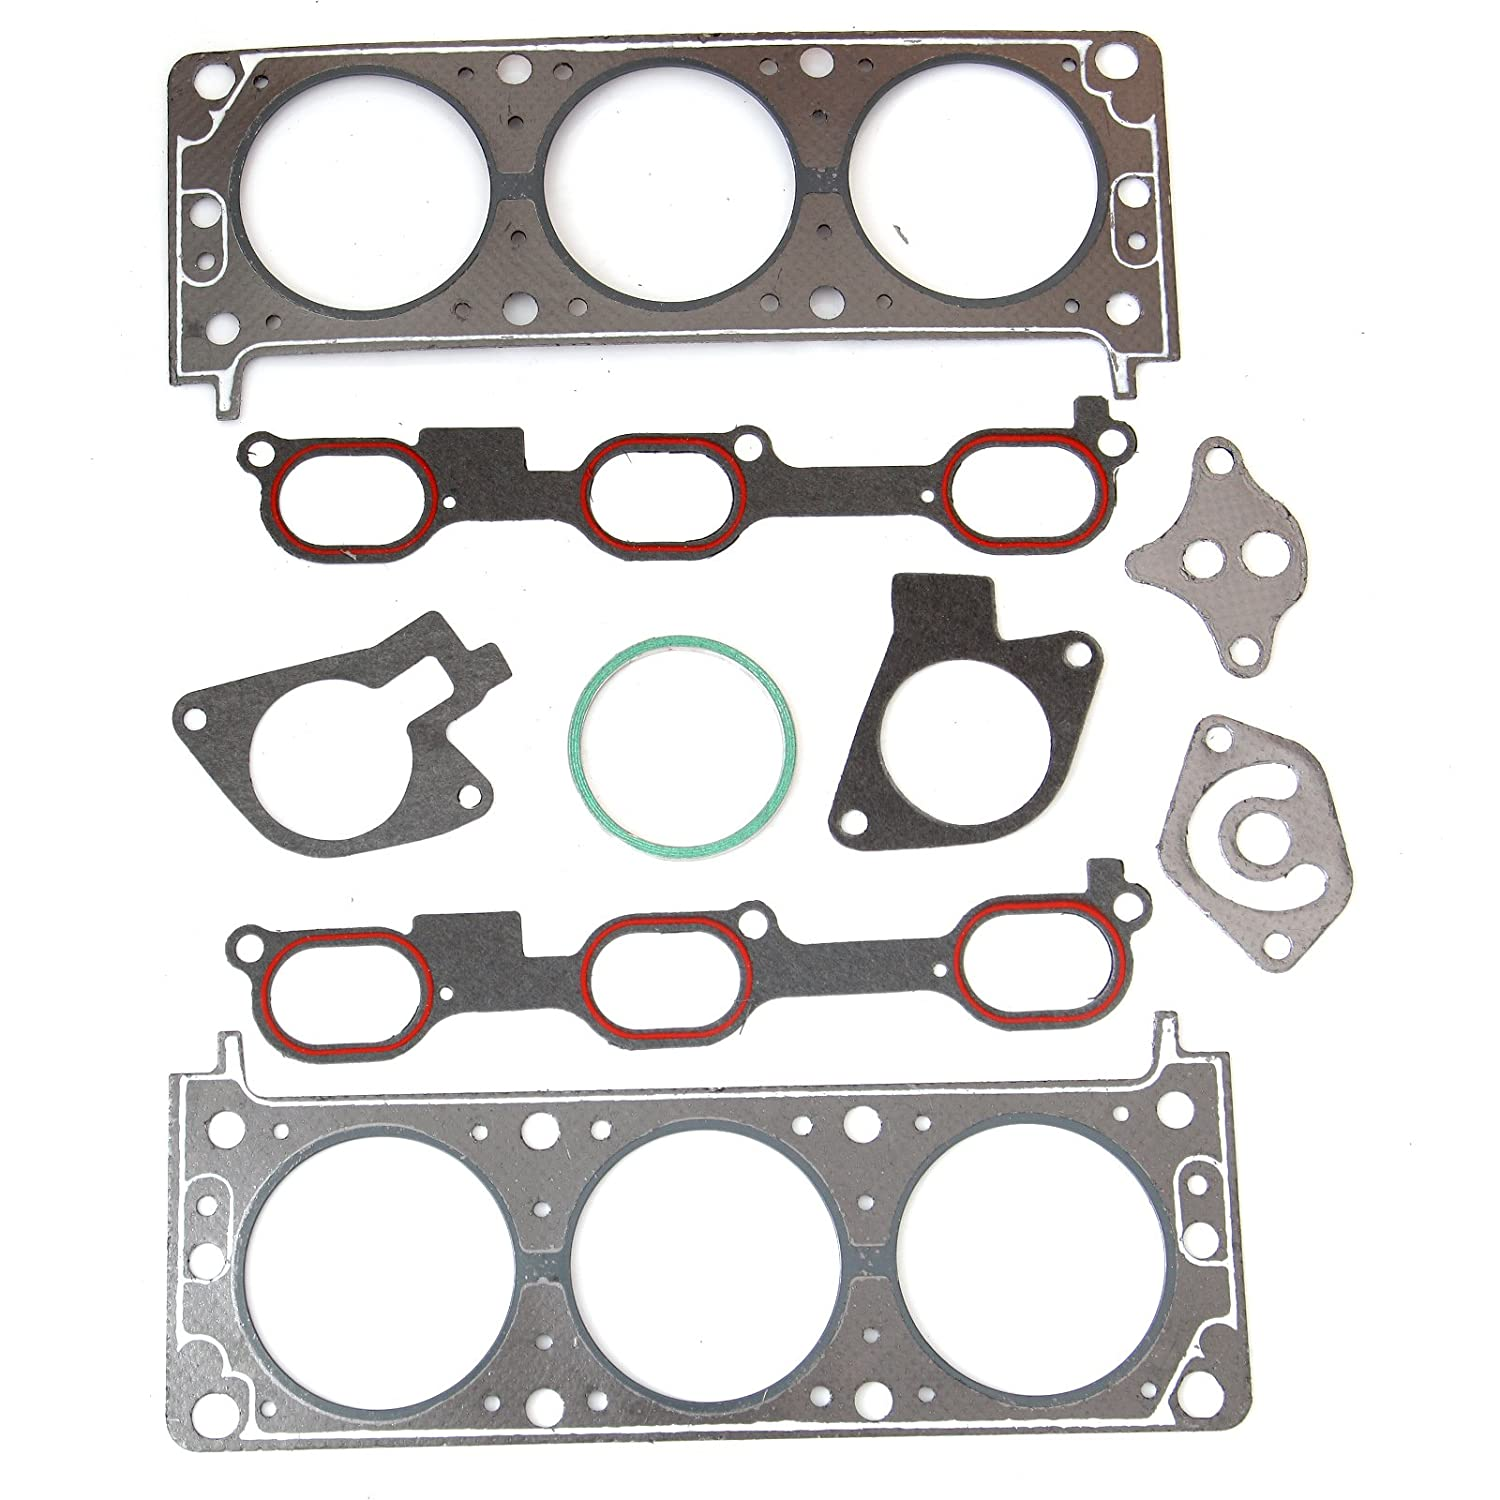 SCITOO Replacement for Head Gasket Kits Chevrolet Impala Buick Pontiac Oldsmobile 3.1L/3.4L Engine Head Gaskets Set Kit